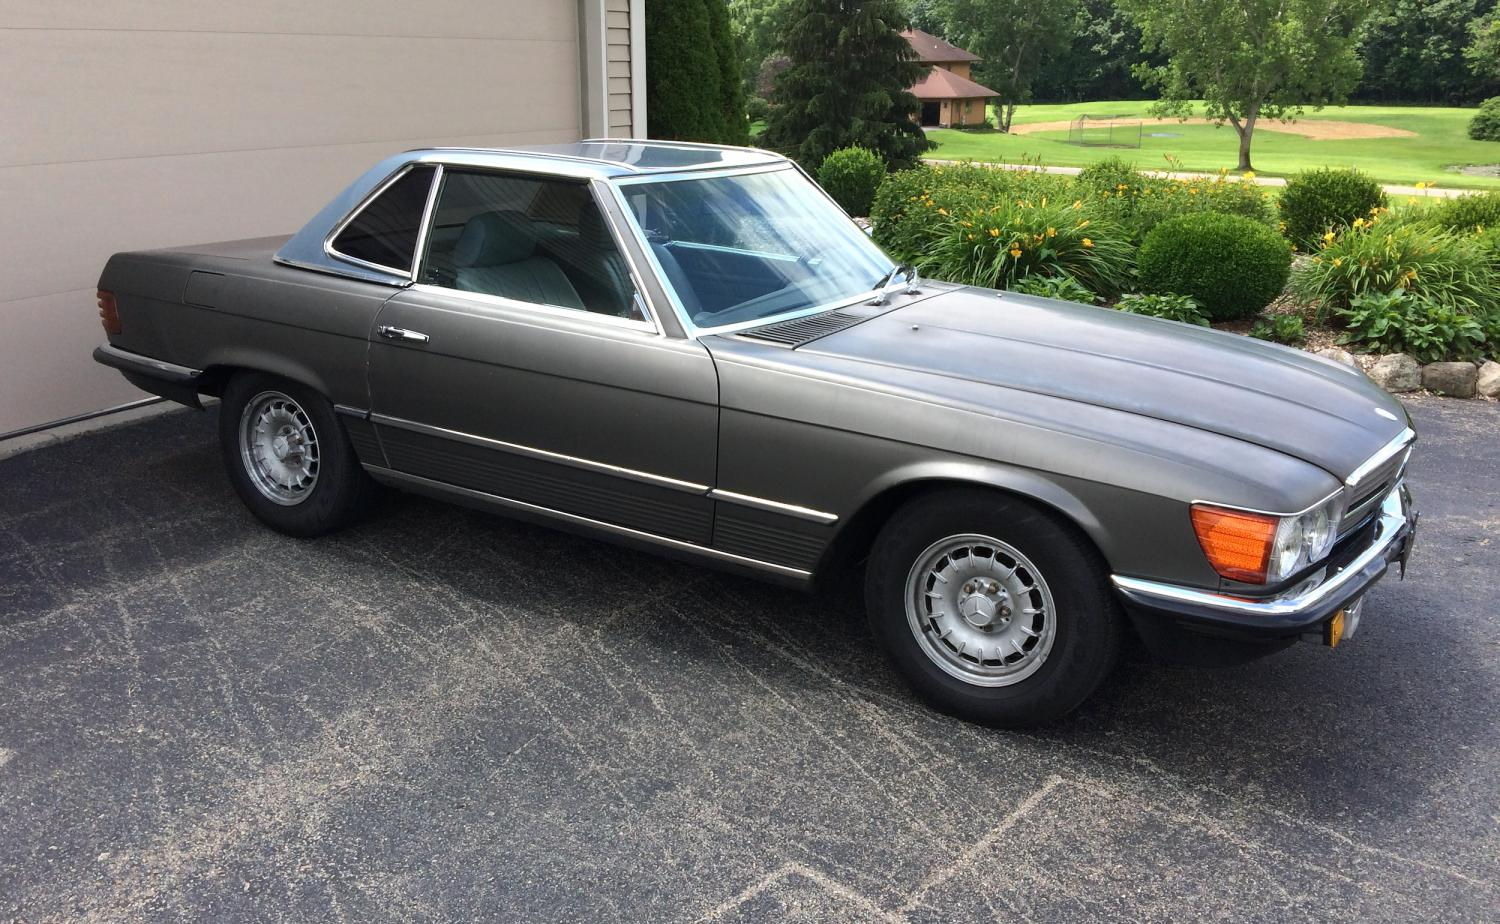 For sale 1984 euro 380sl w 3 tops peachparts mercedes for Mercedes benz 300td wagon for sale craigslist